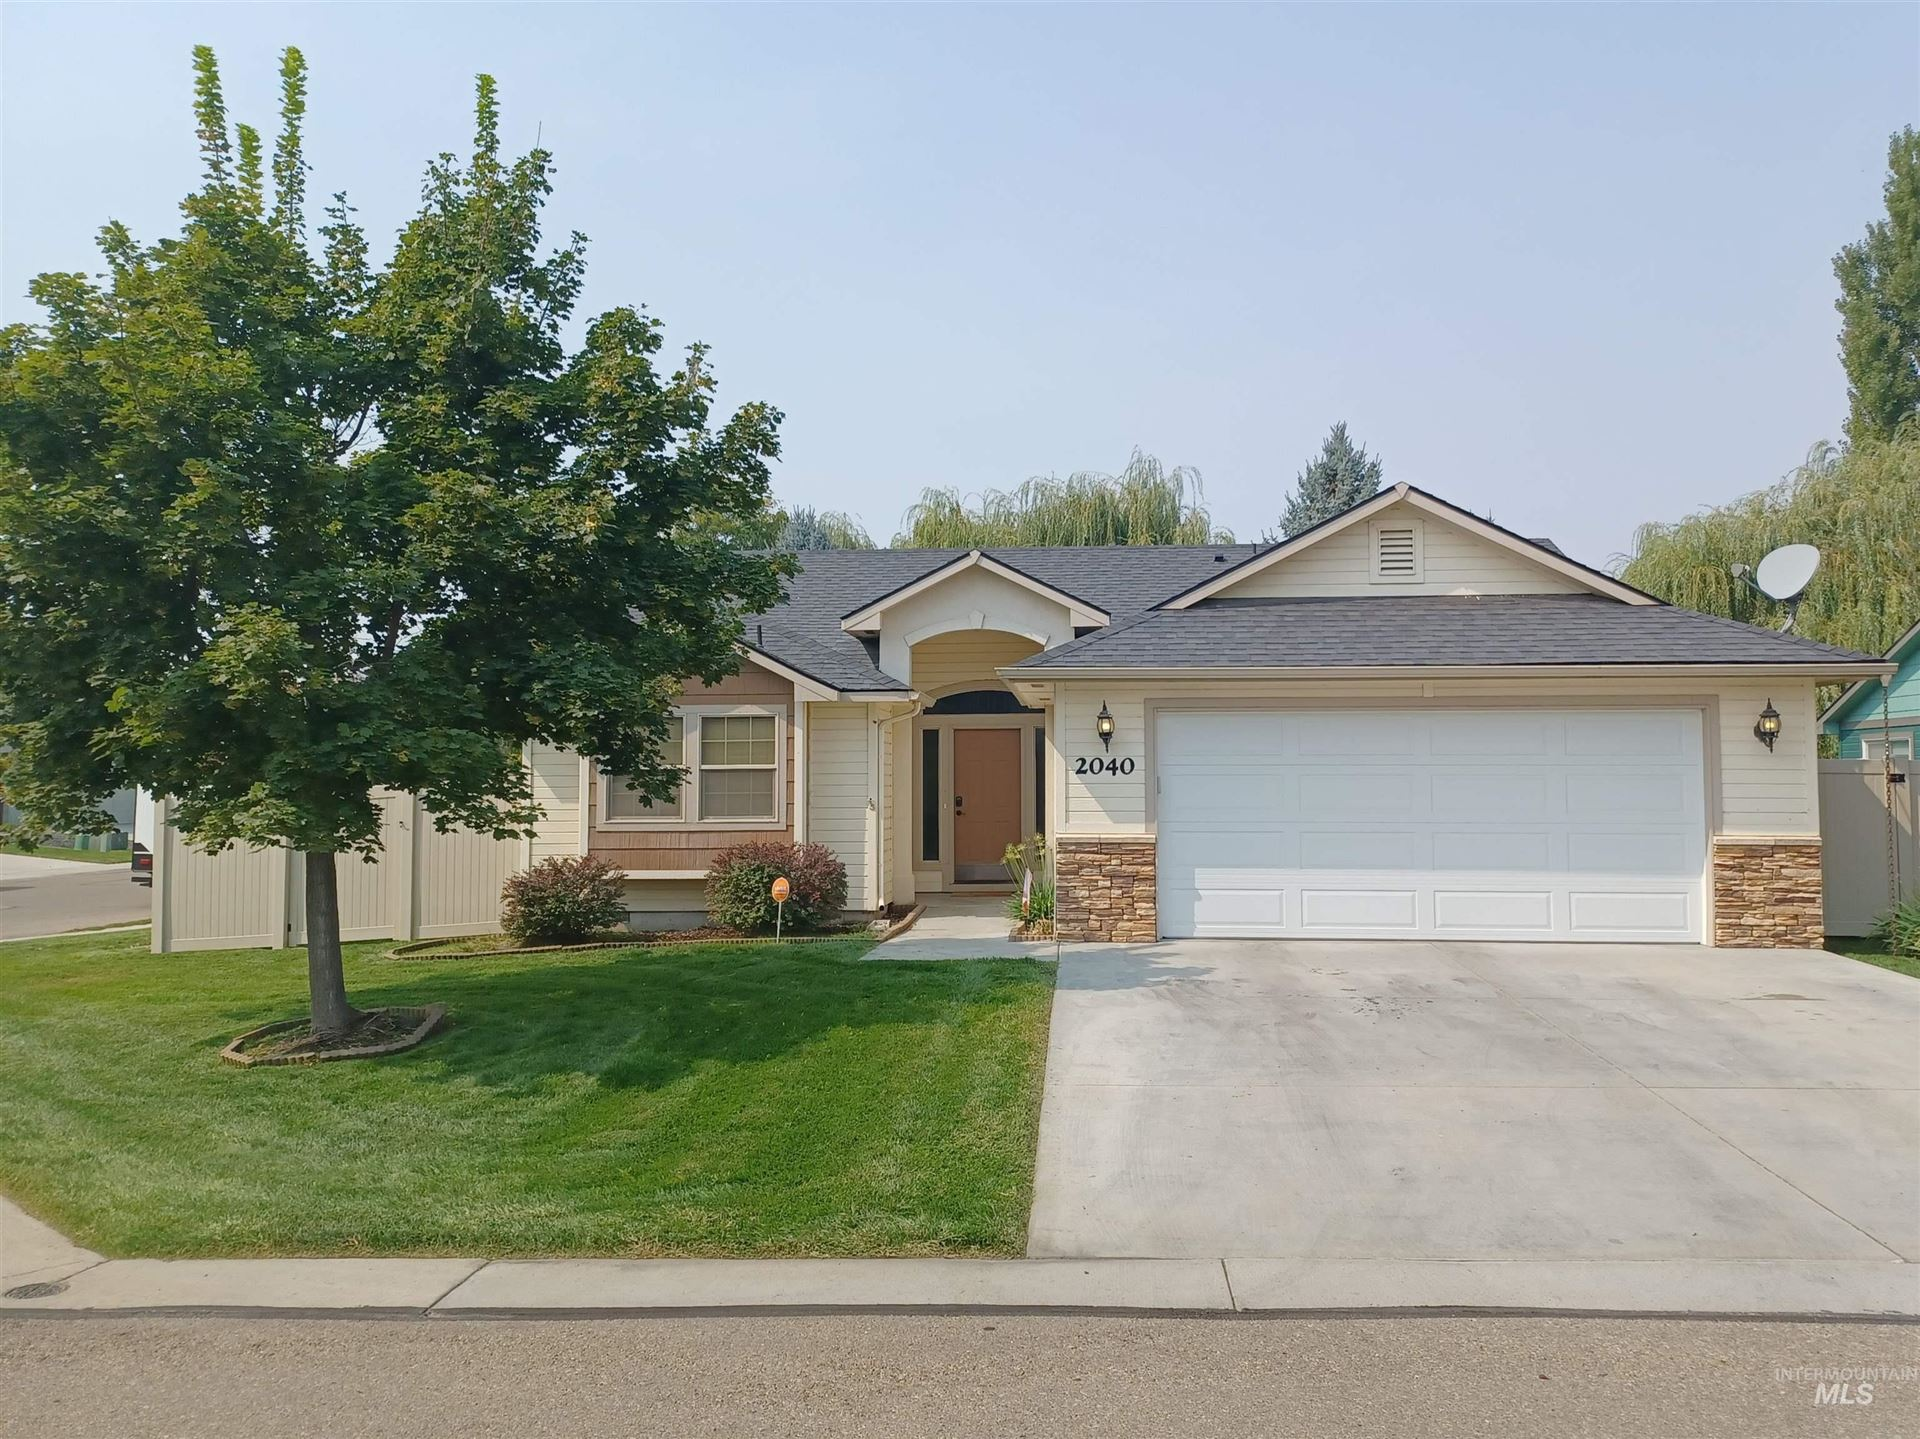 2040 W Cabot Ave, Nampa, ID 83686 - MLS#: 98818106